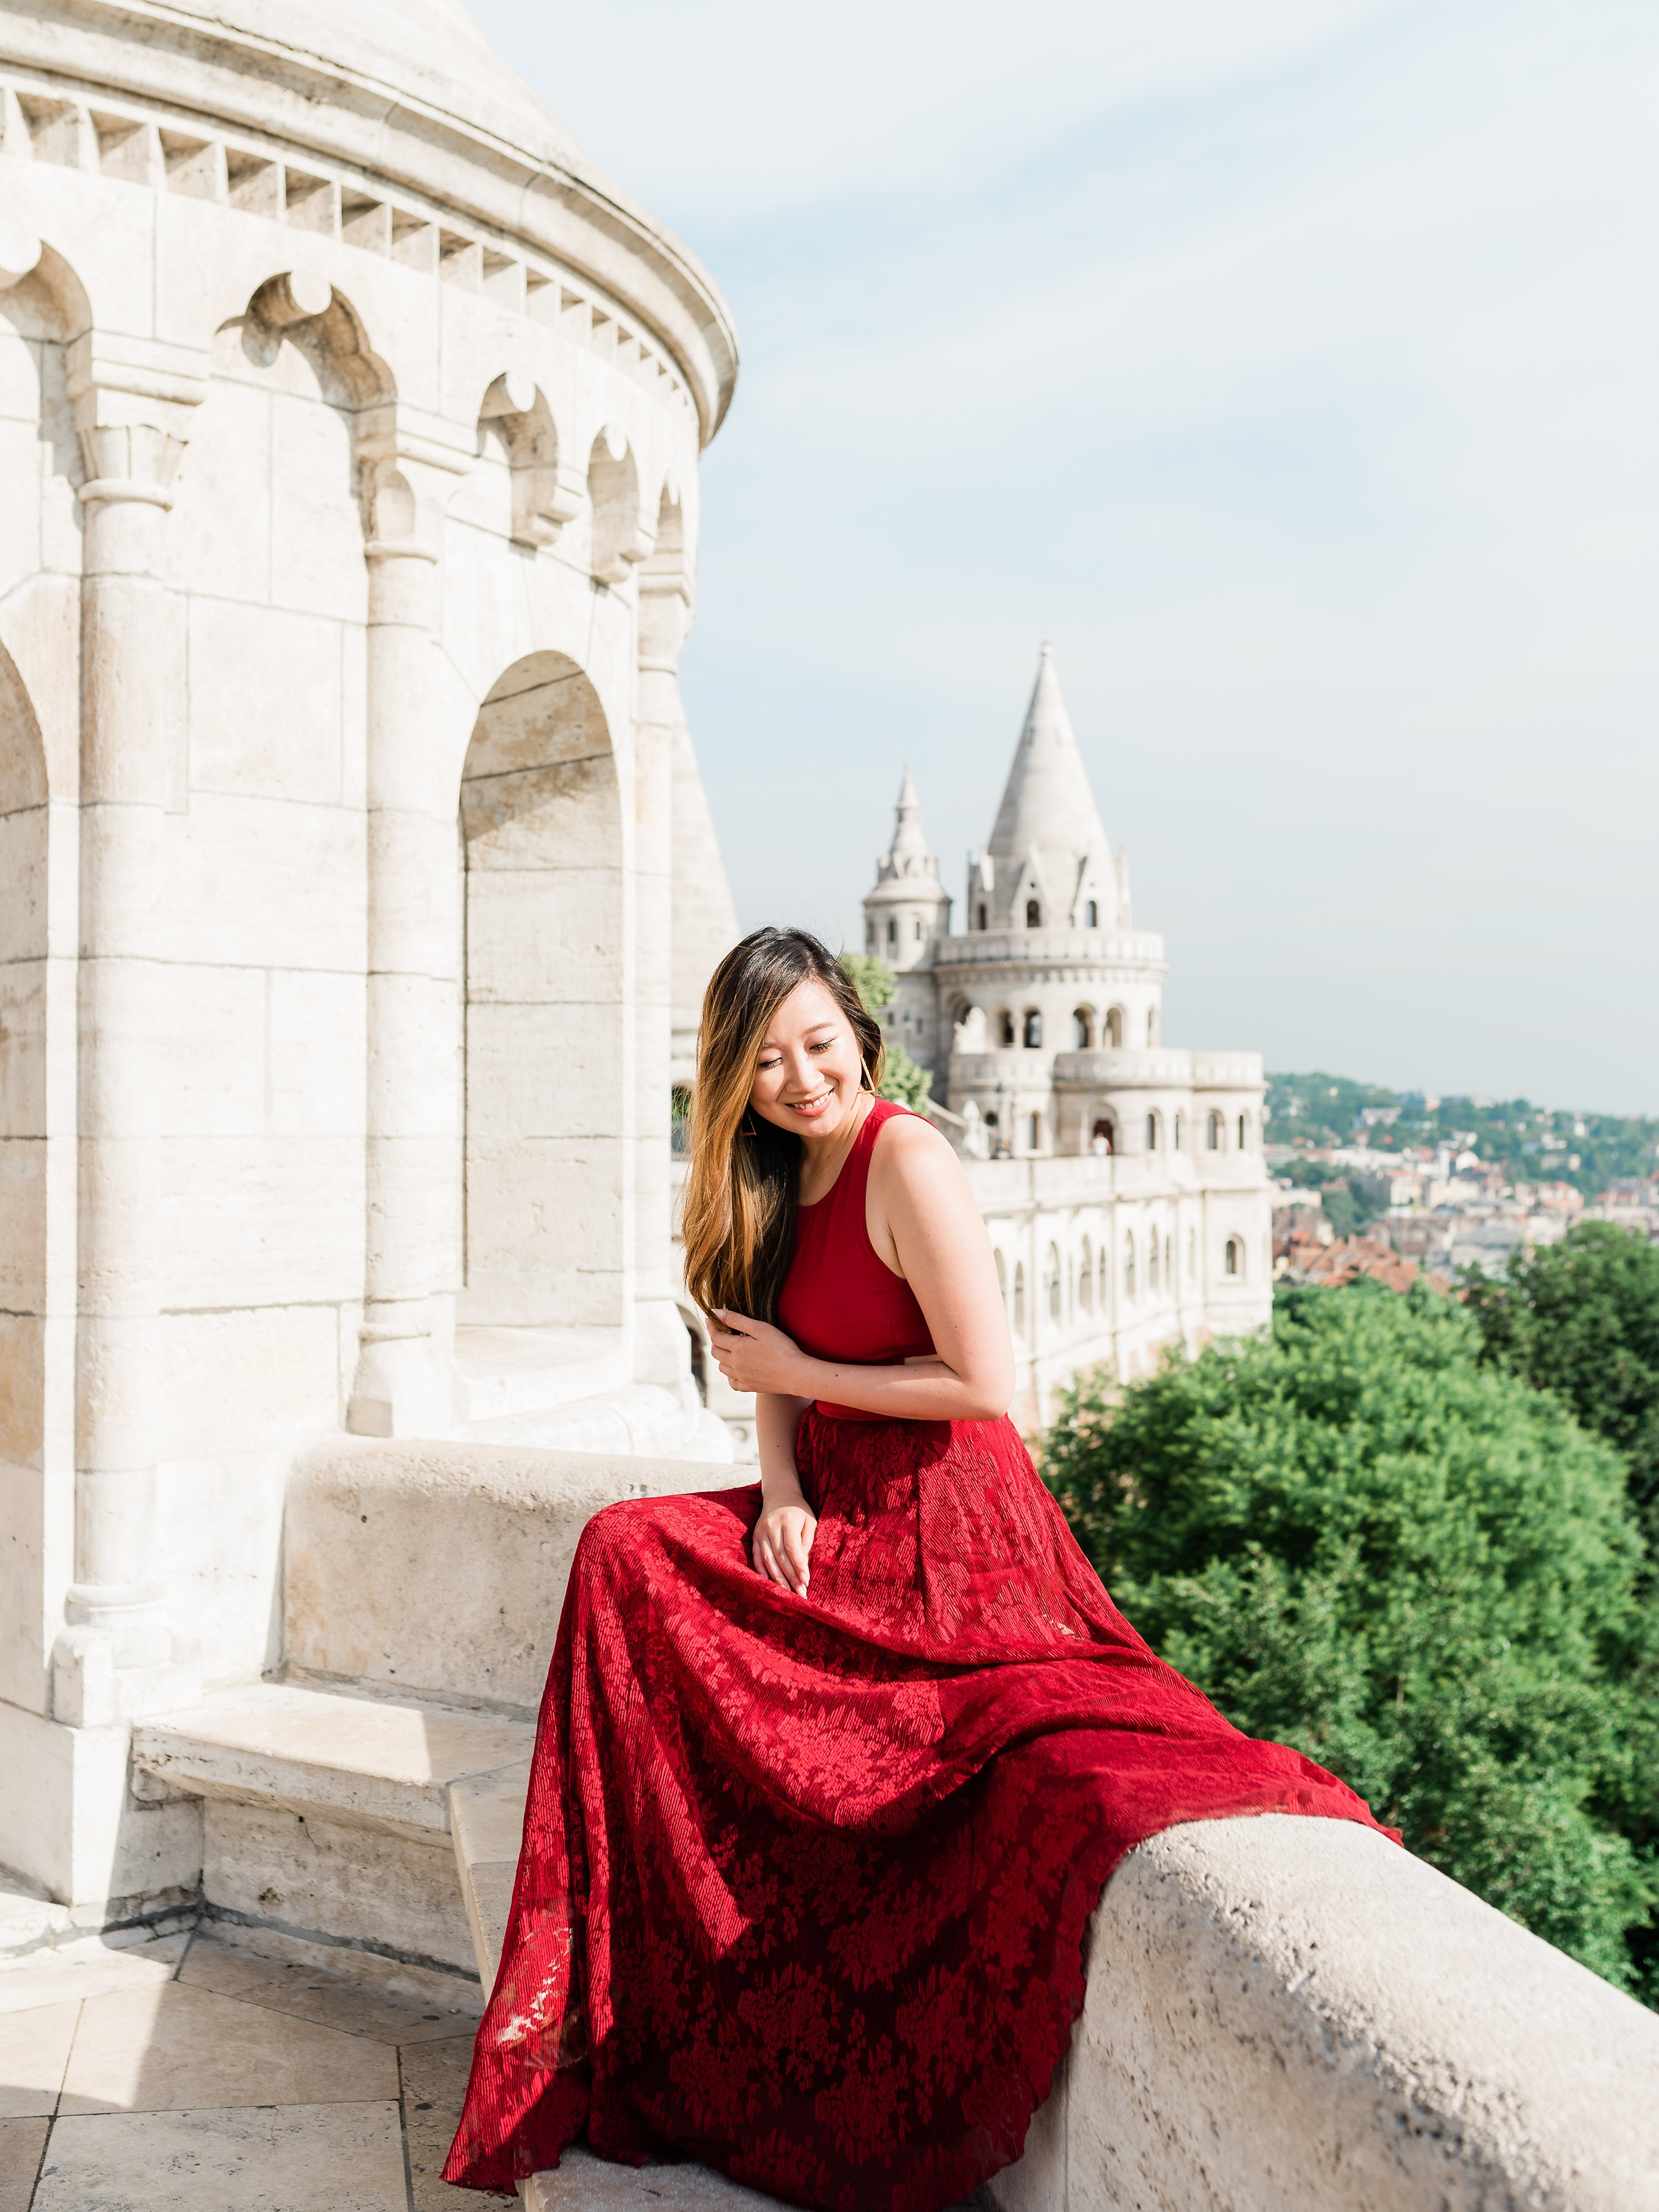 Dress by Sachin & Babi (similar  here  and  here ).  This set of photos at Fisherman's Bastion was taken by  Dana J. Ardell ; you can check out more shots from this collection  on her blog .